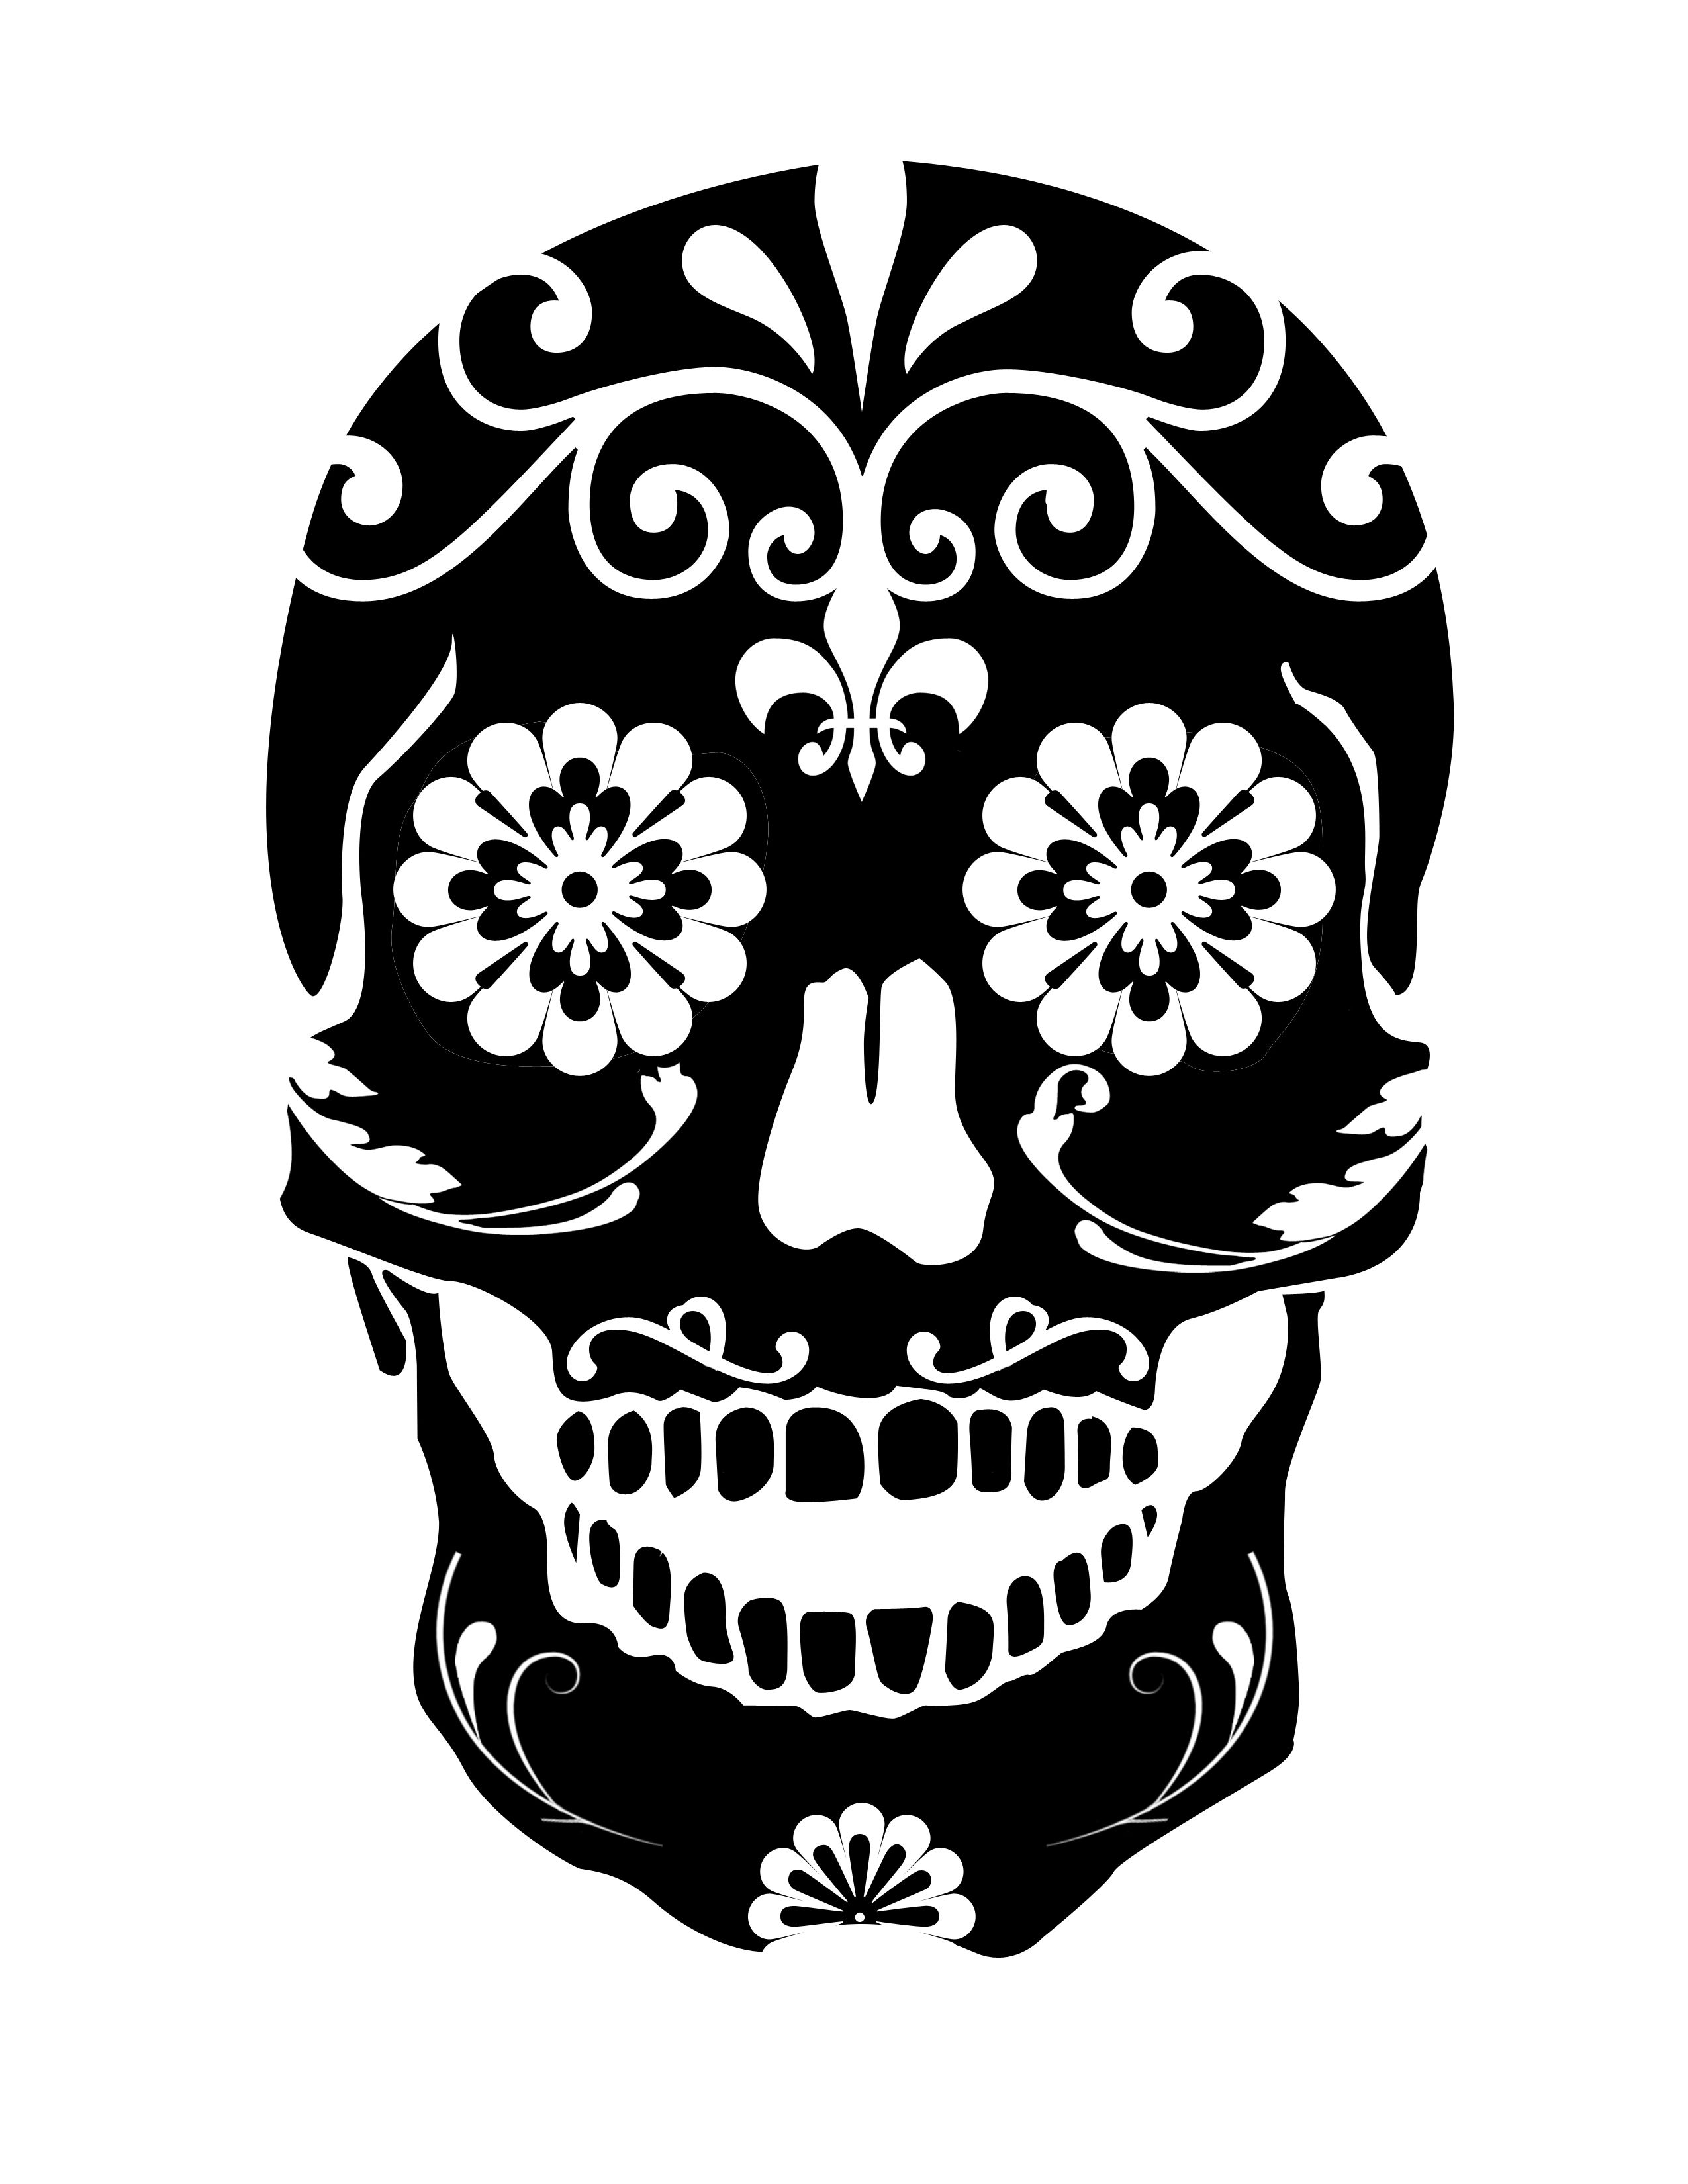 Badass Skull Tattoo Designs For Men And Women Halloween